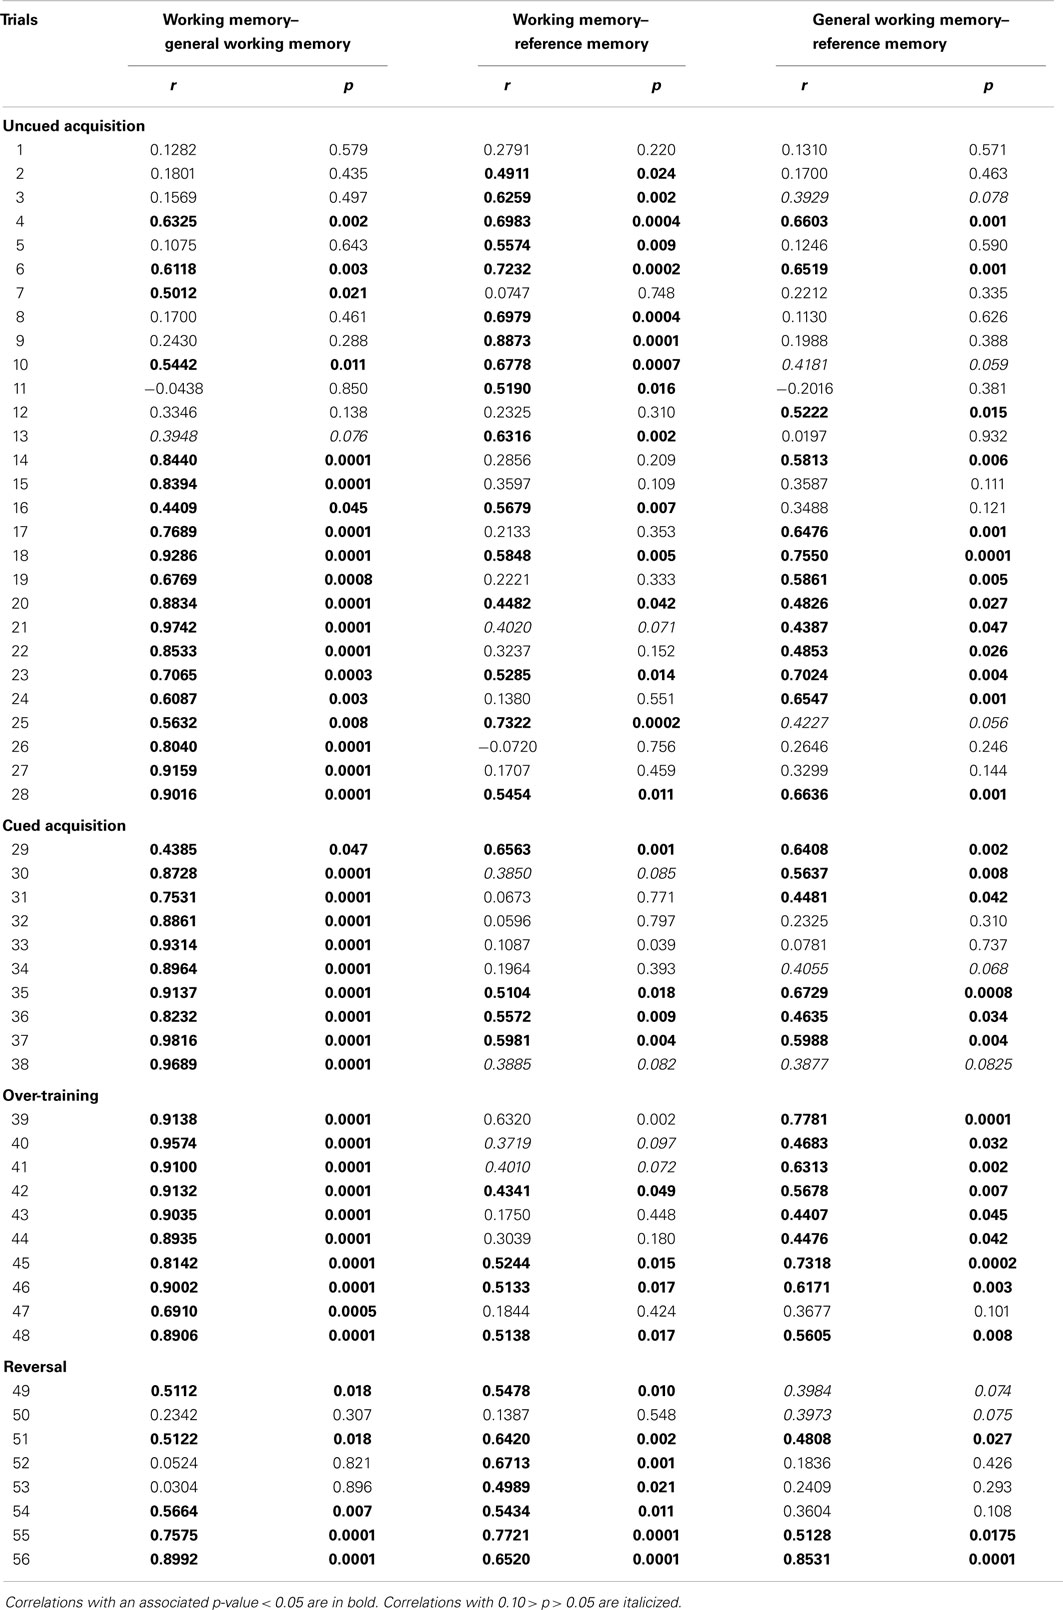 how to find t critical value on r